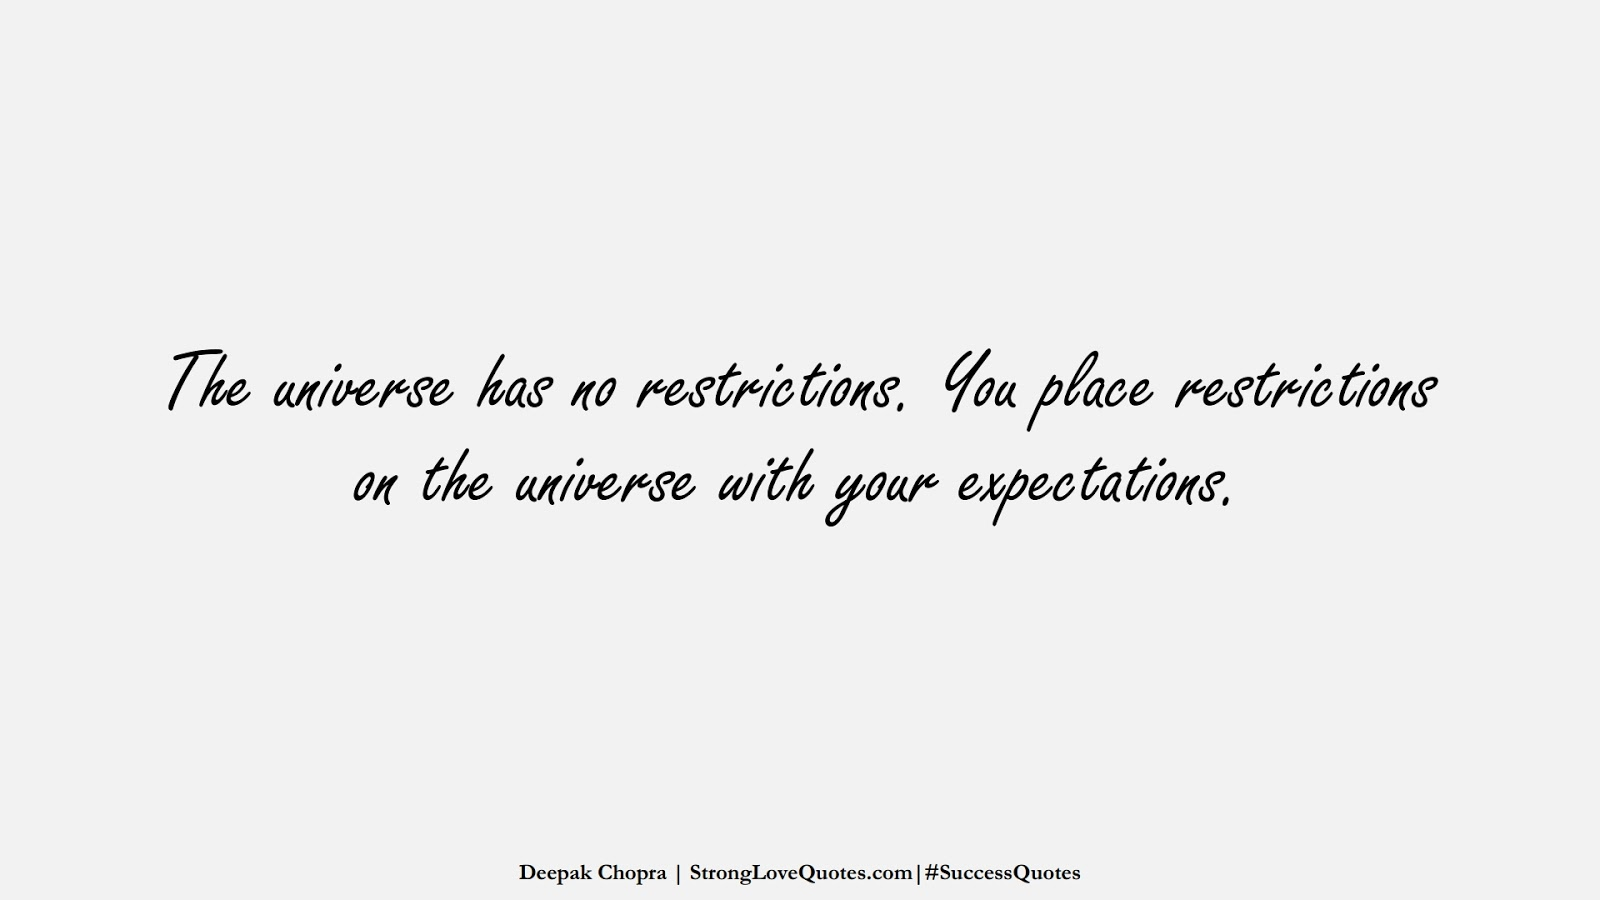 The universe has no restrictions. You place restrictions on the universe with your expectations. (Deepak Chopra);  #SuccessQuotes